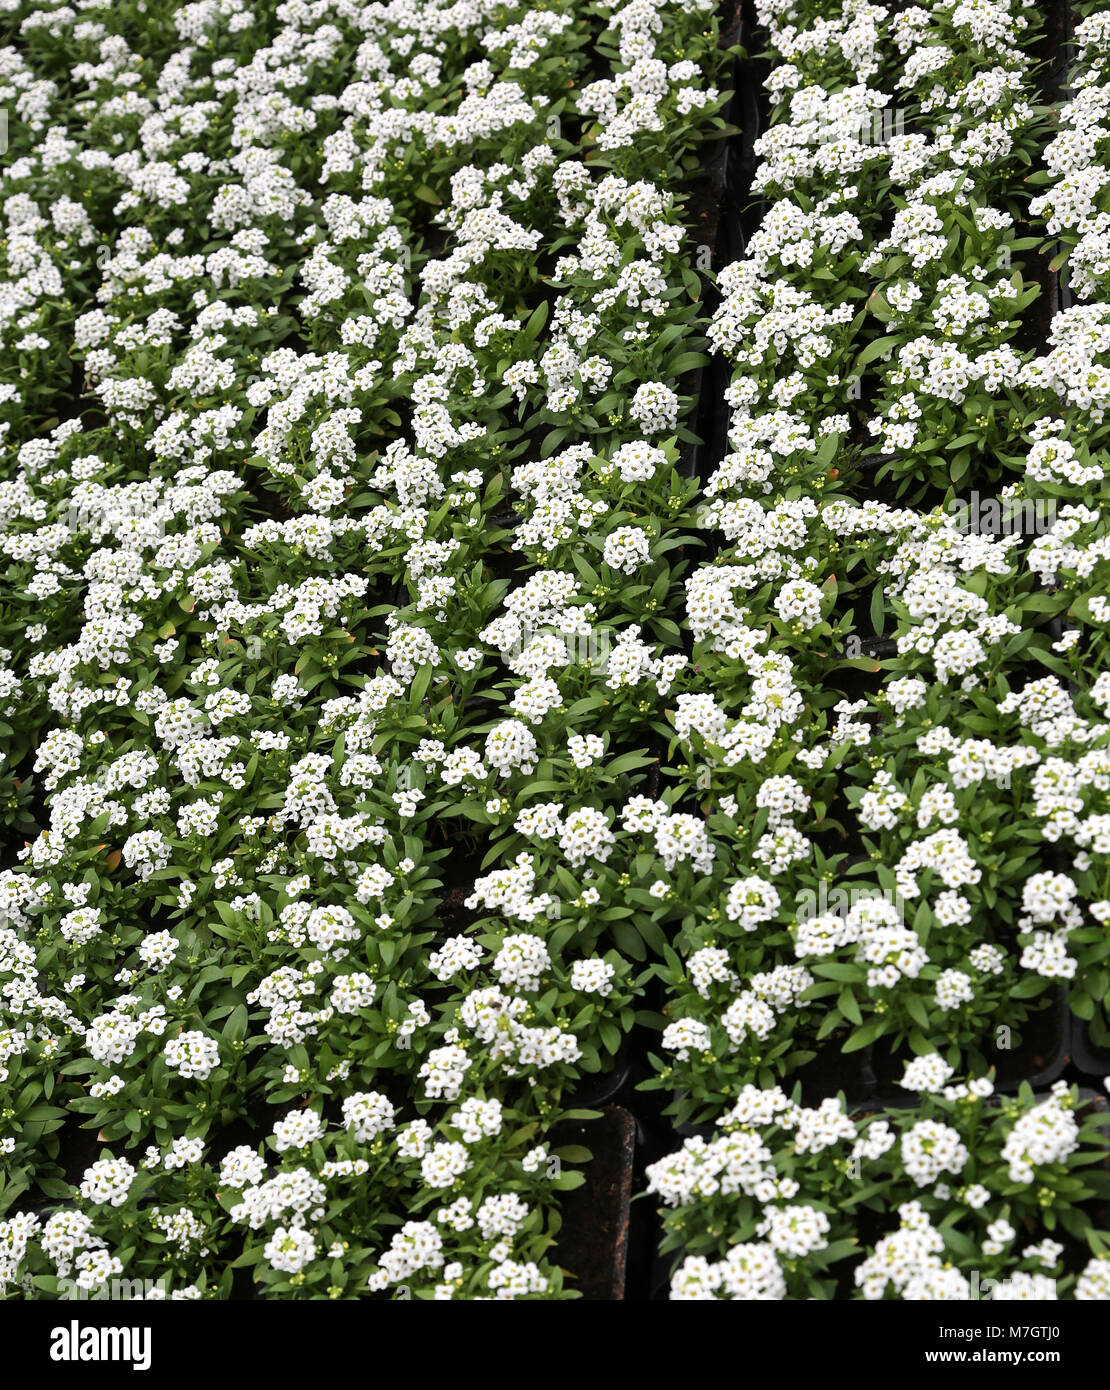 Background of small white flowers of lobularia maritima also called background of small white flowers of lobularia maritima also called alyssum for sale in a greenhouse mightylinksfo